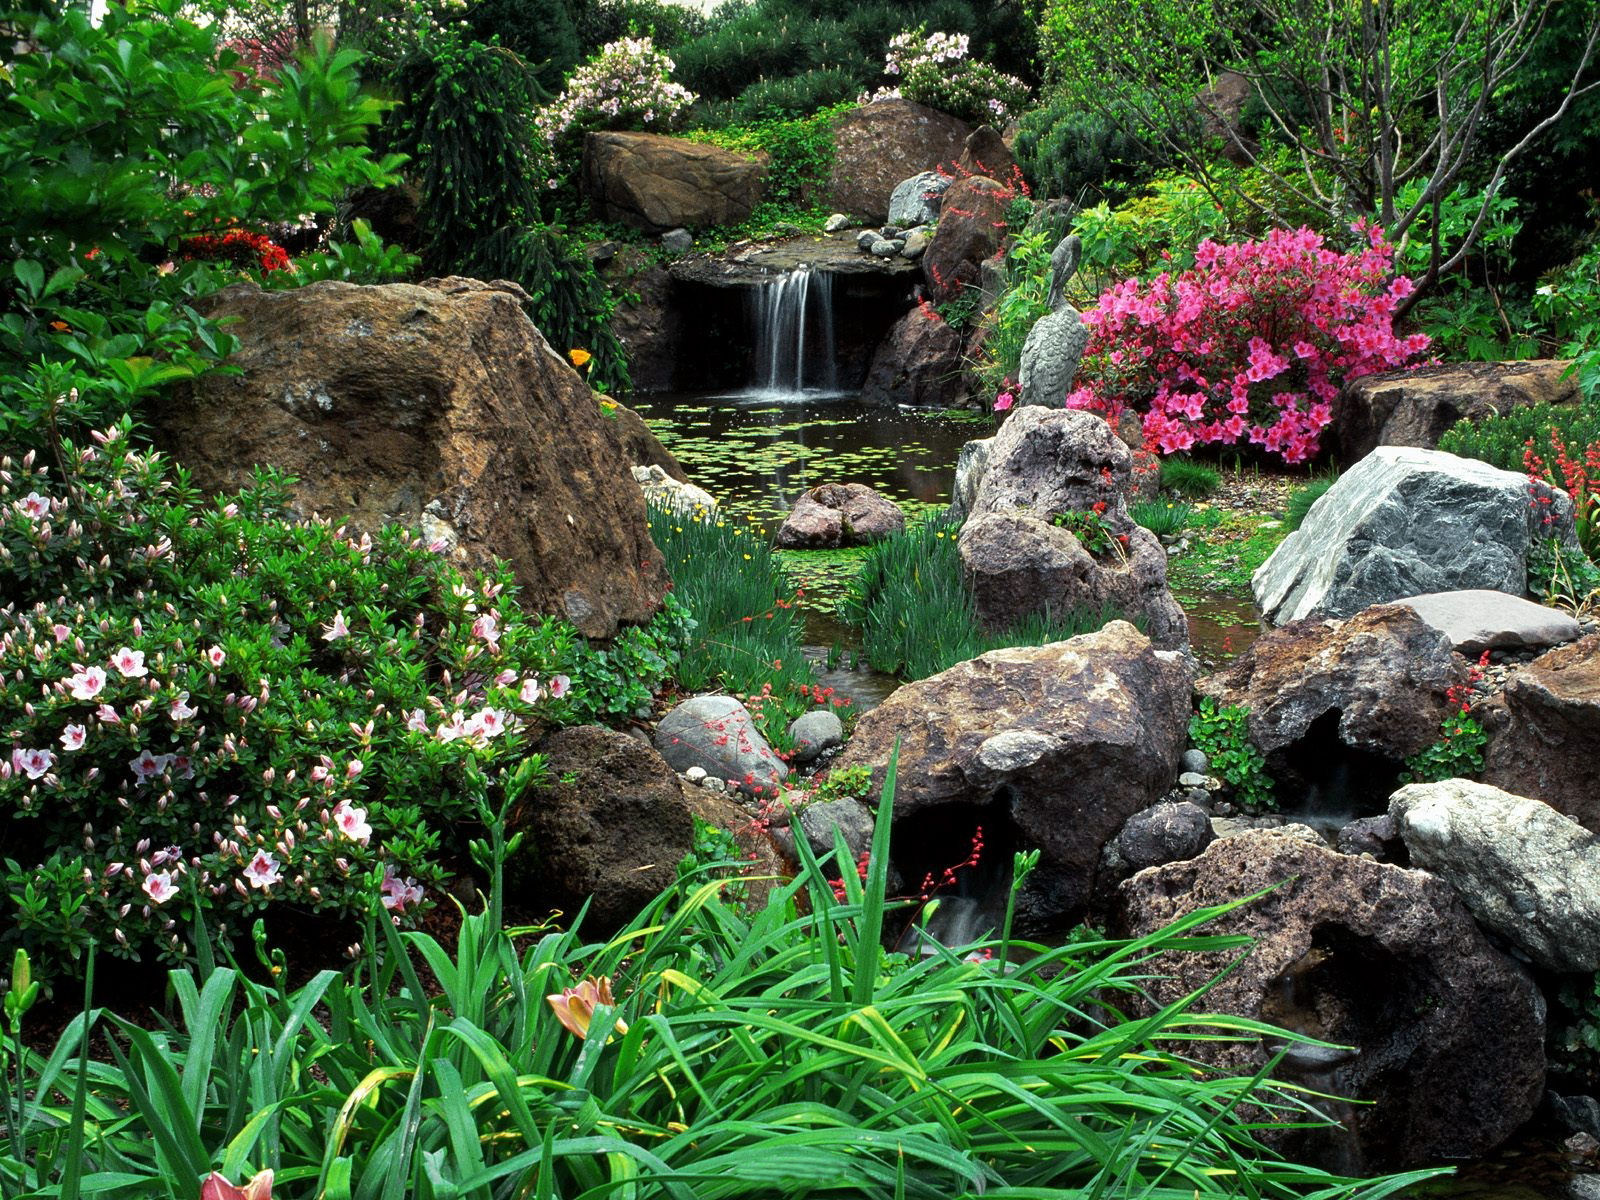 garden wallpaper 16 photos 3 - Beautiful Garden Pictures